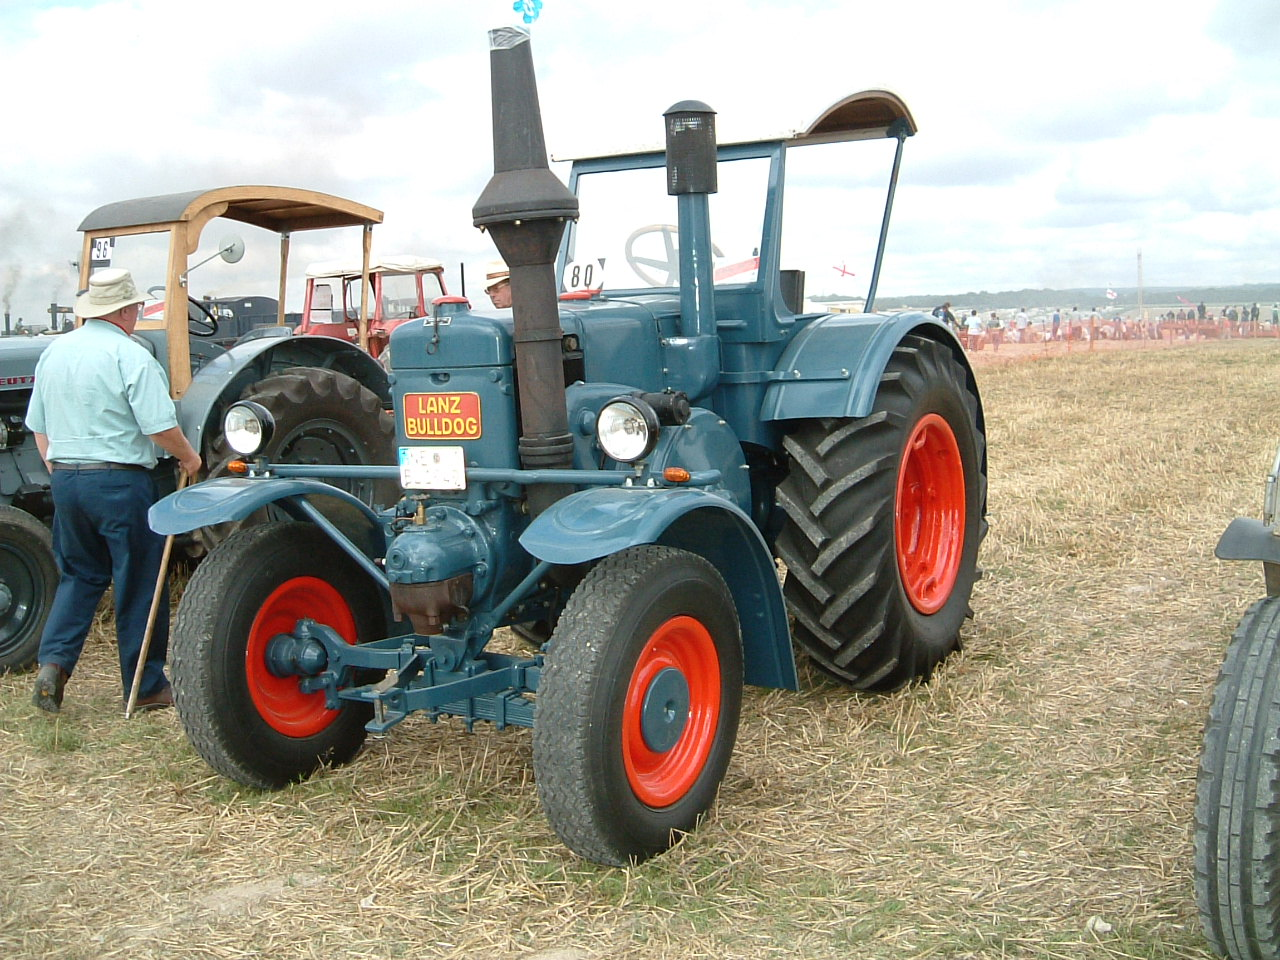 Lanz | Tractor & Construction Plant Wiki | FANDOM powered by